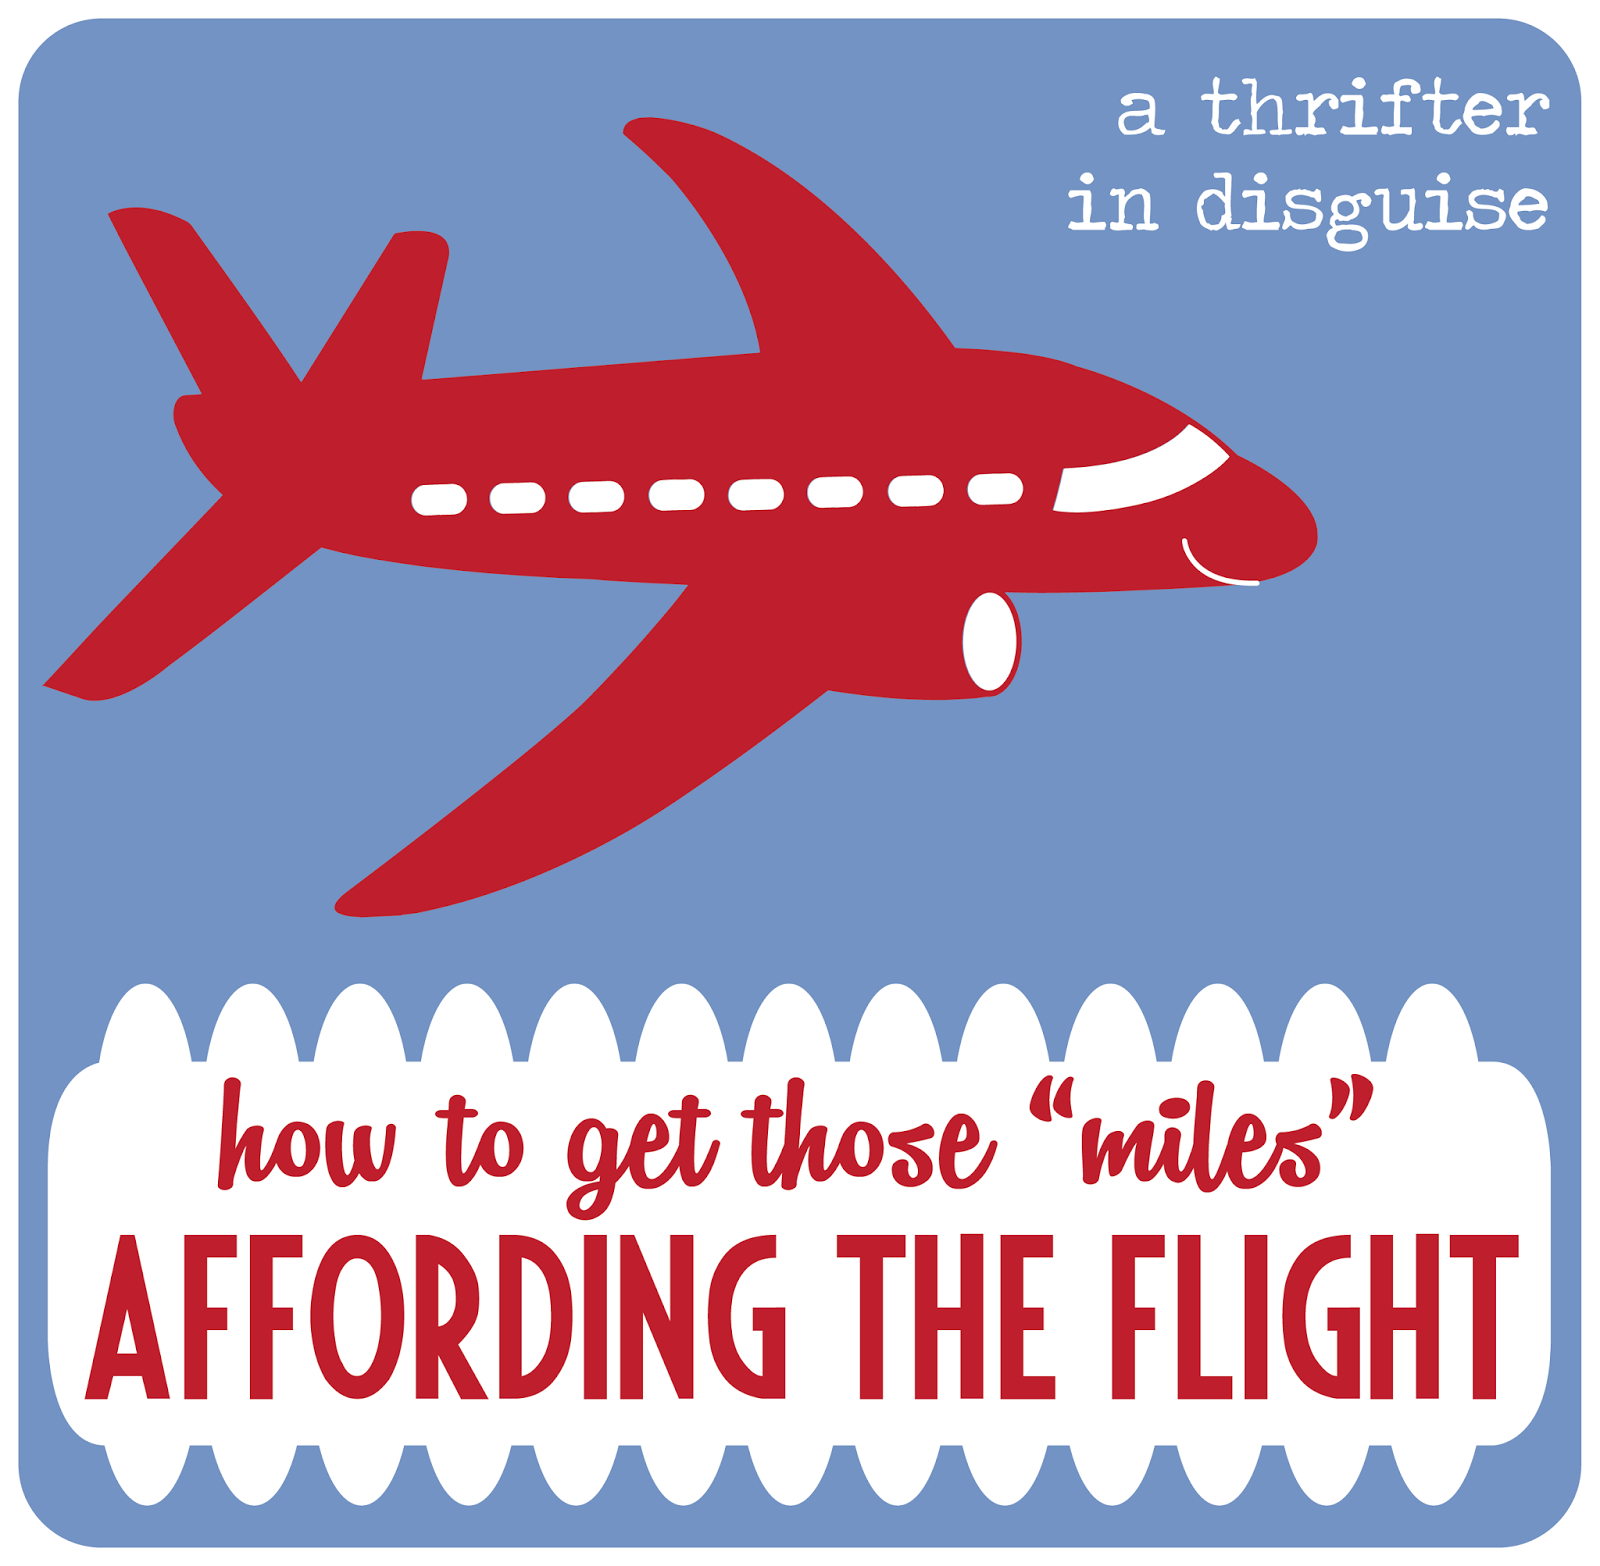 http://www.thrifterindisguise.com/2014/02/how-to-find-best-deals-on-airline.html